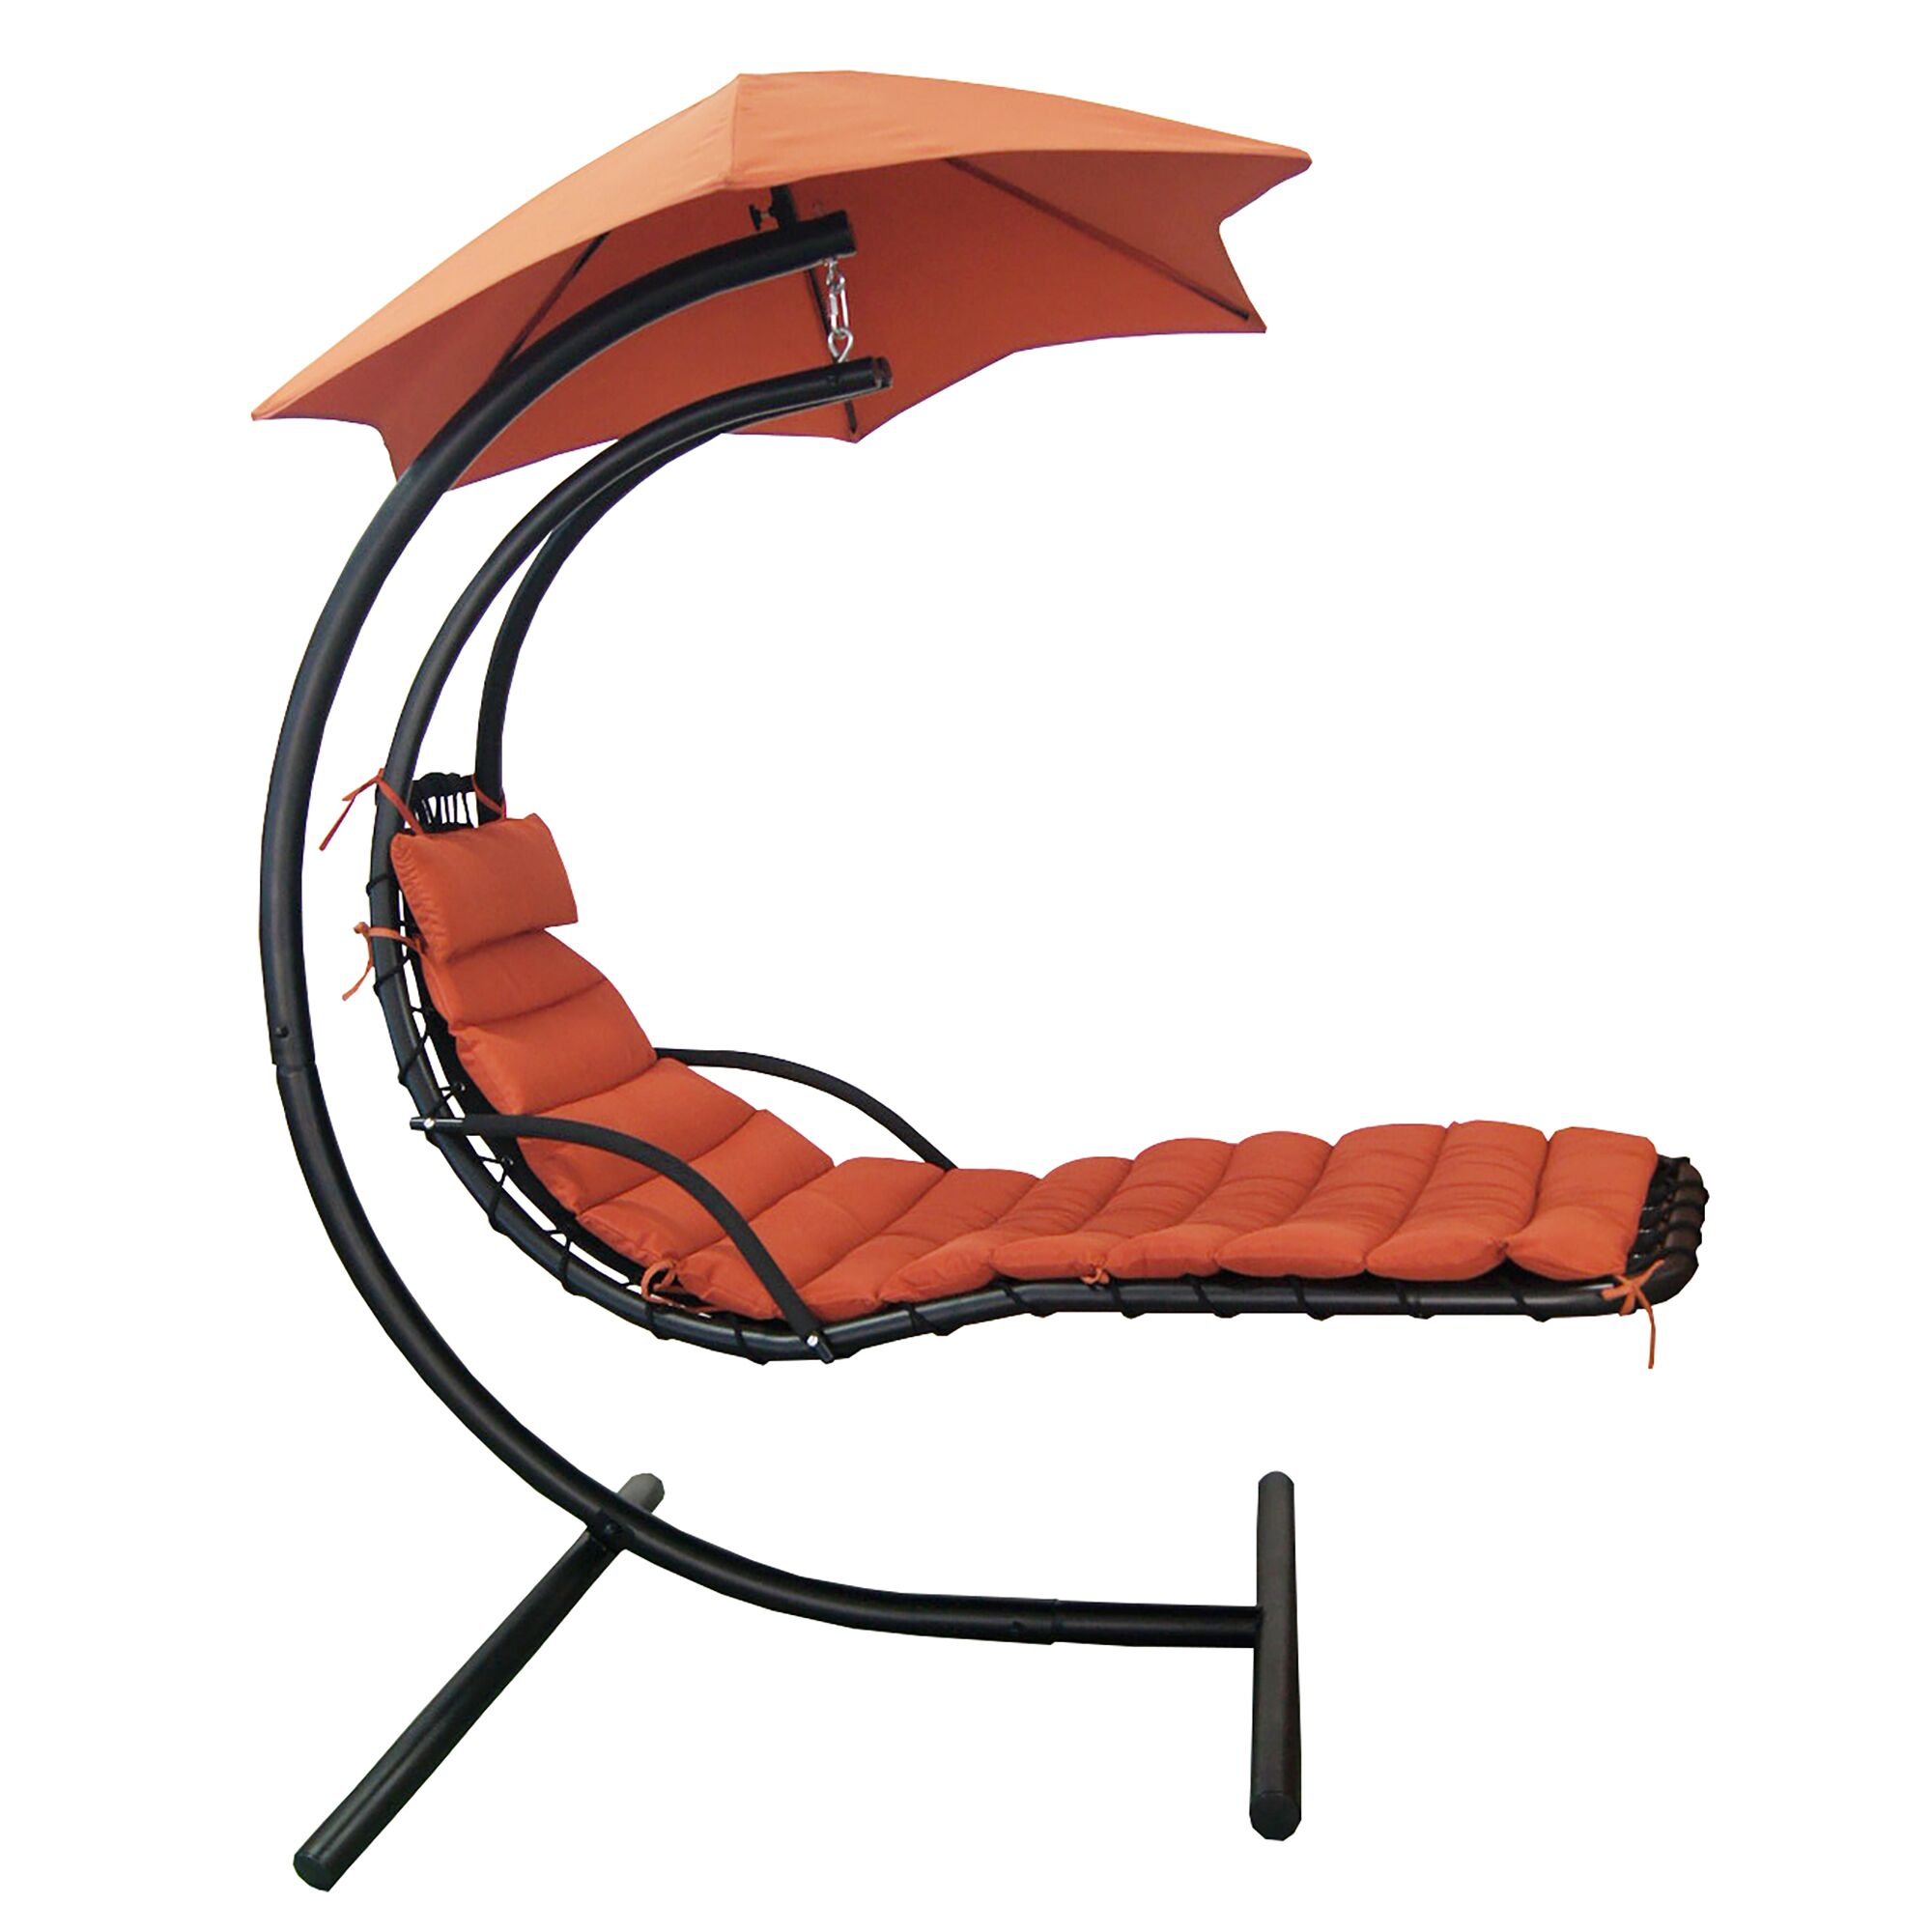 Cano Polyester Hanging Chaise Lounger with Stand Fabric: Terra Cotta